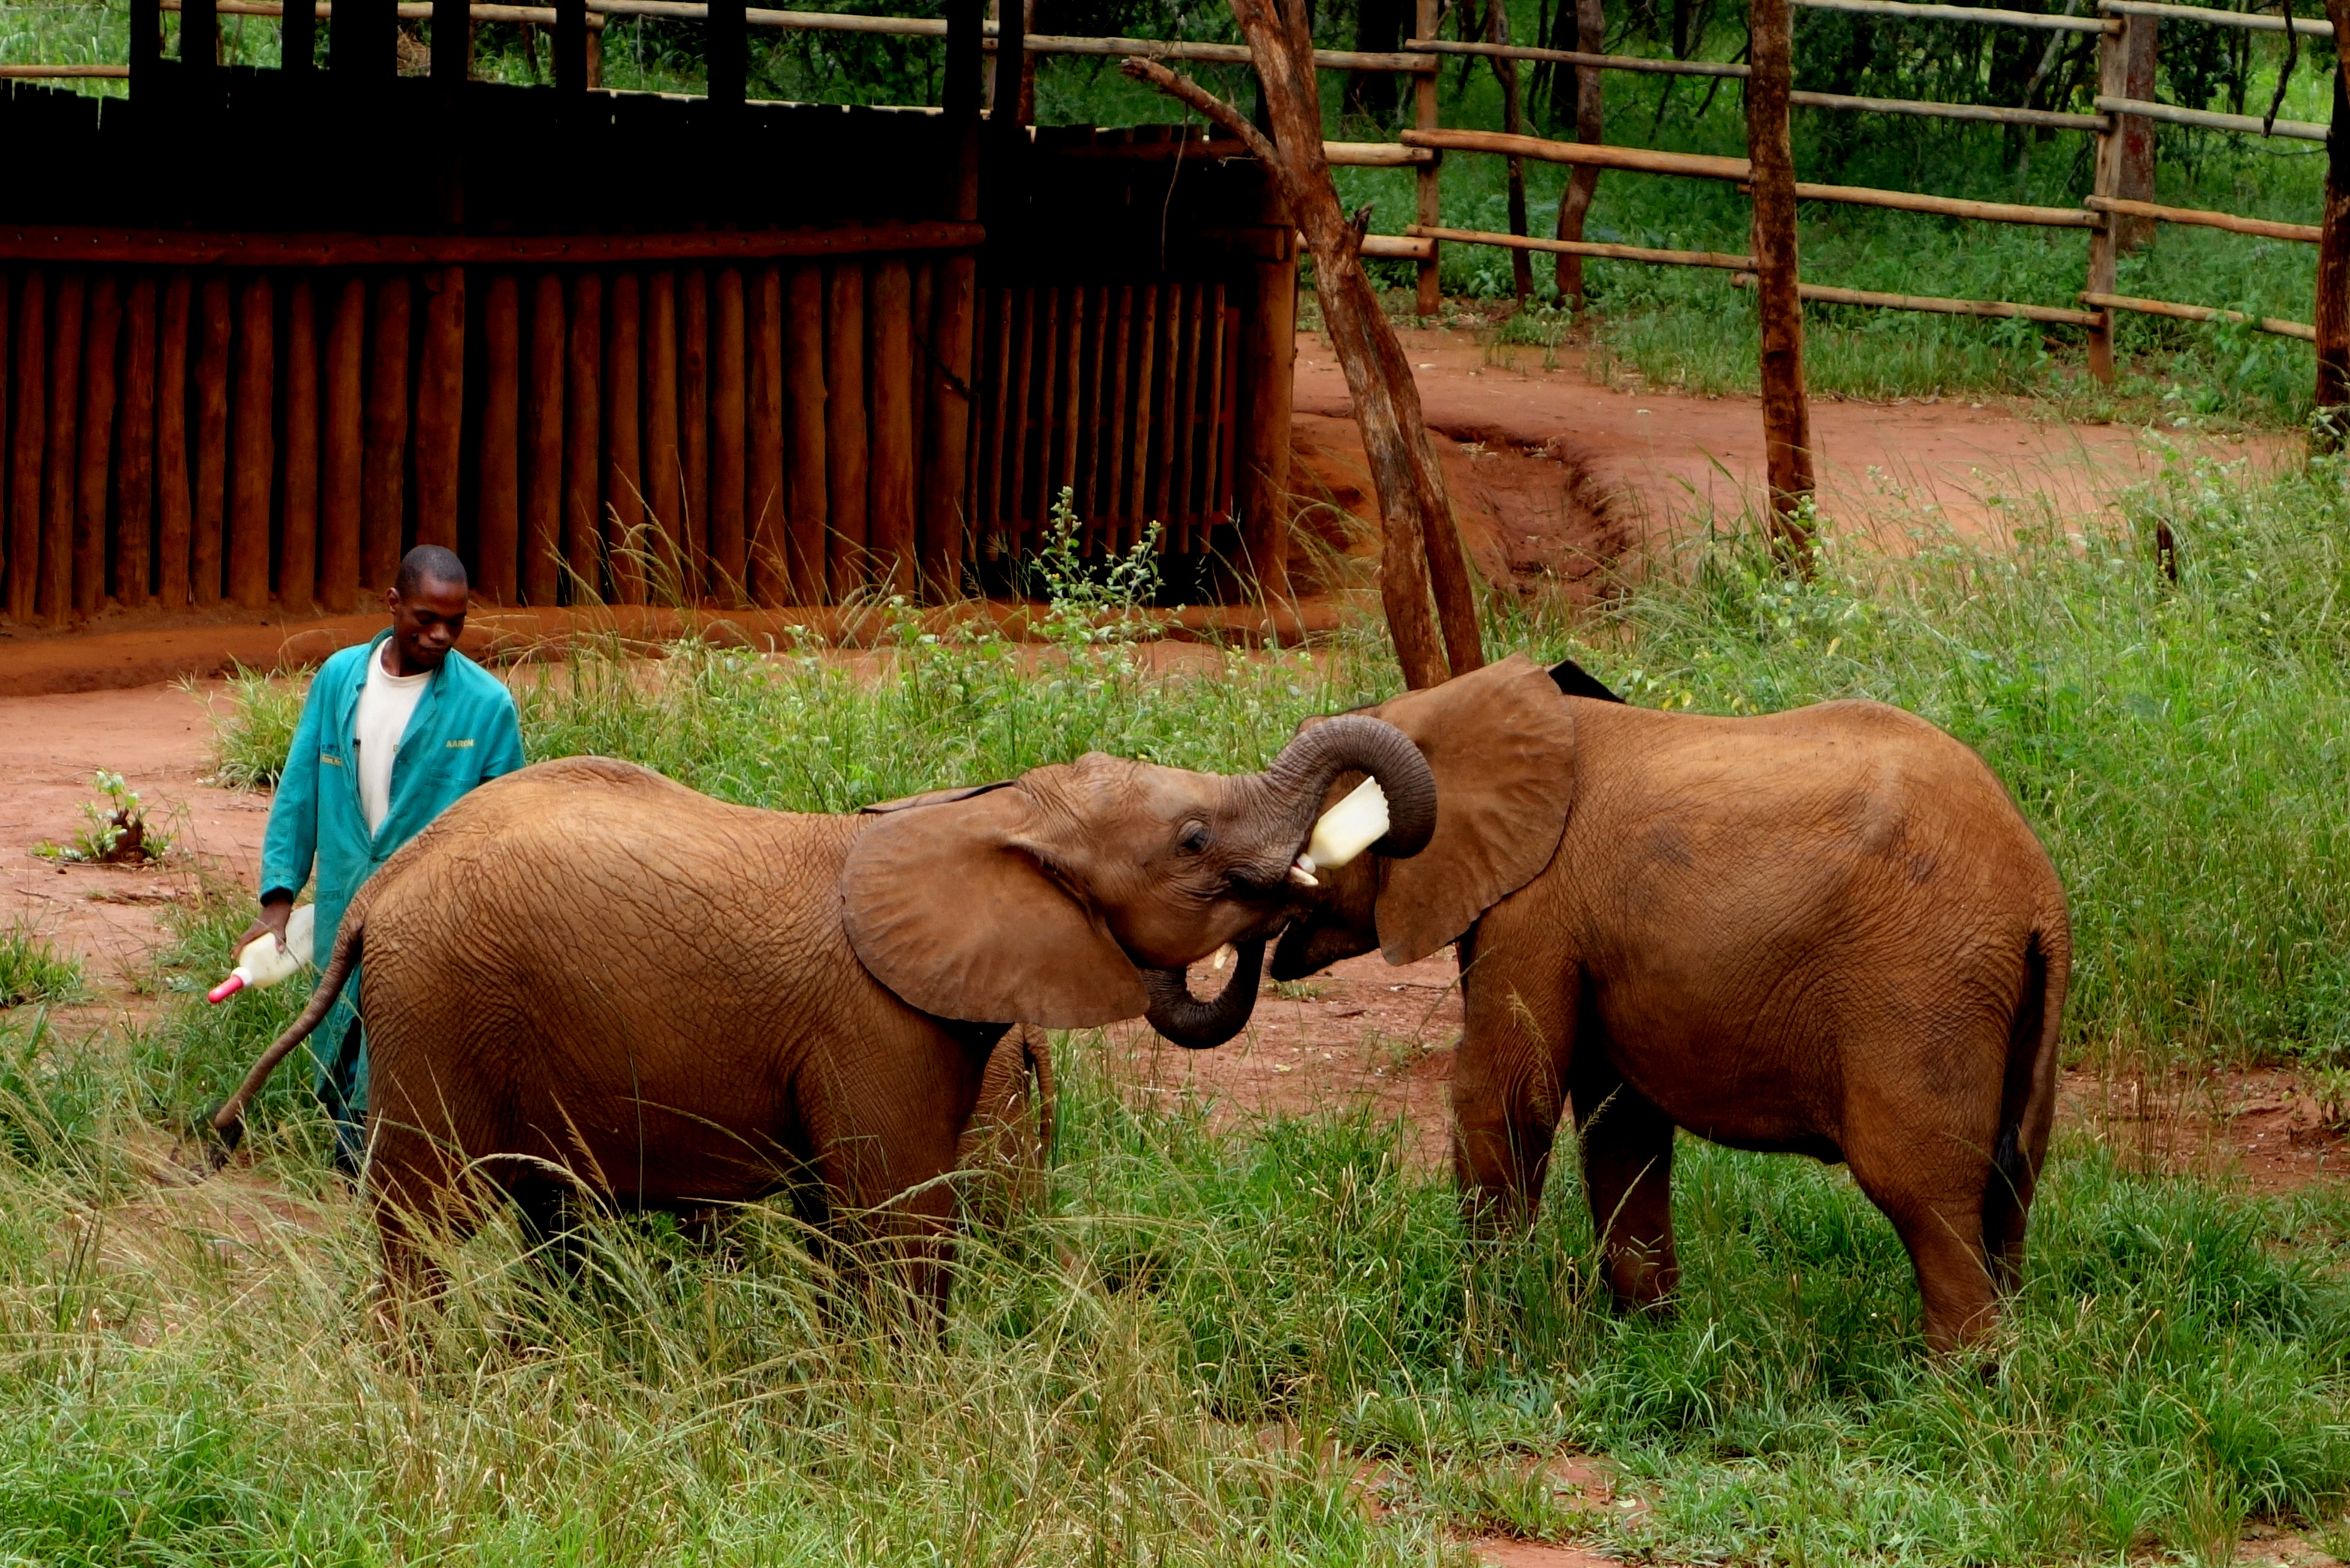 Lilayi Lodge and Elephant Nursery in Lusaka, Zambia